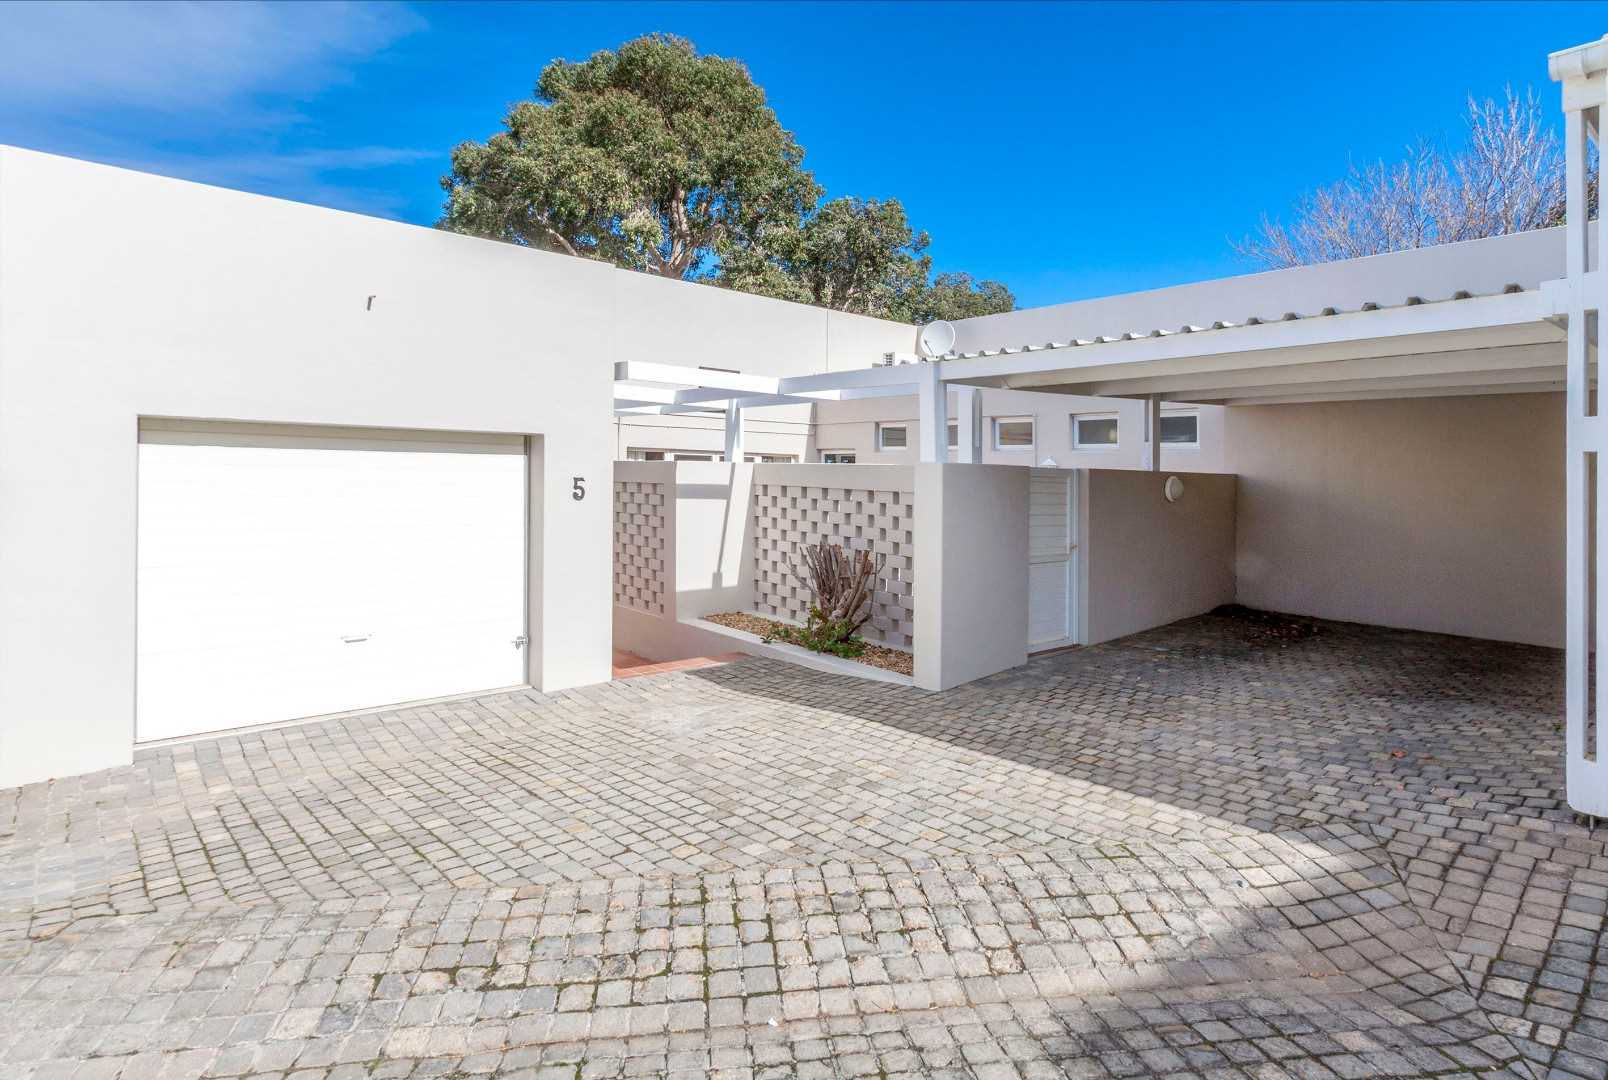 Single, direct access garage and a covered carport